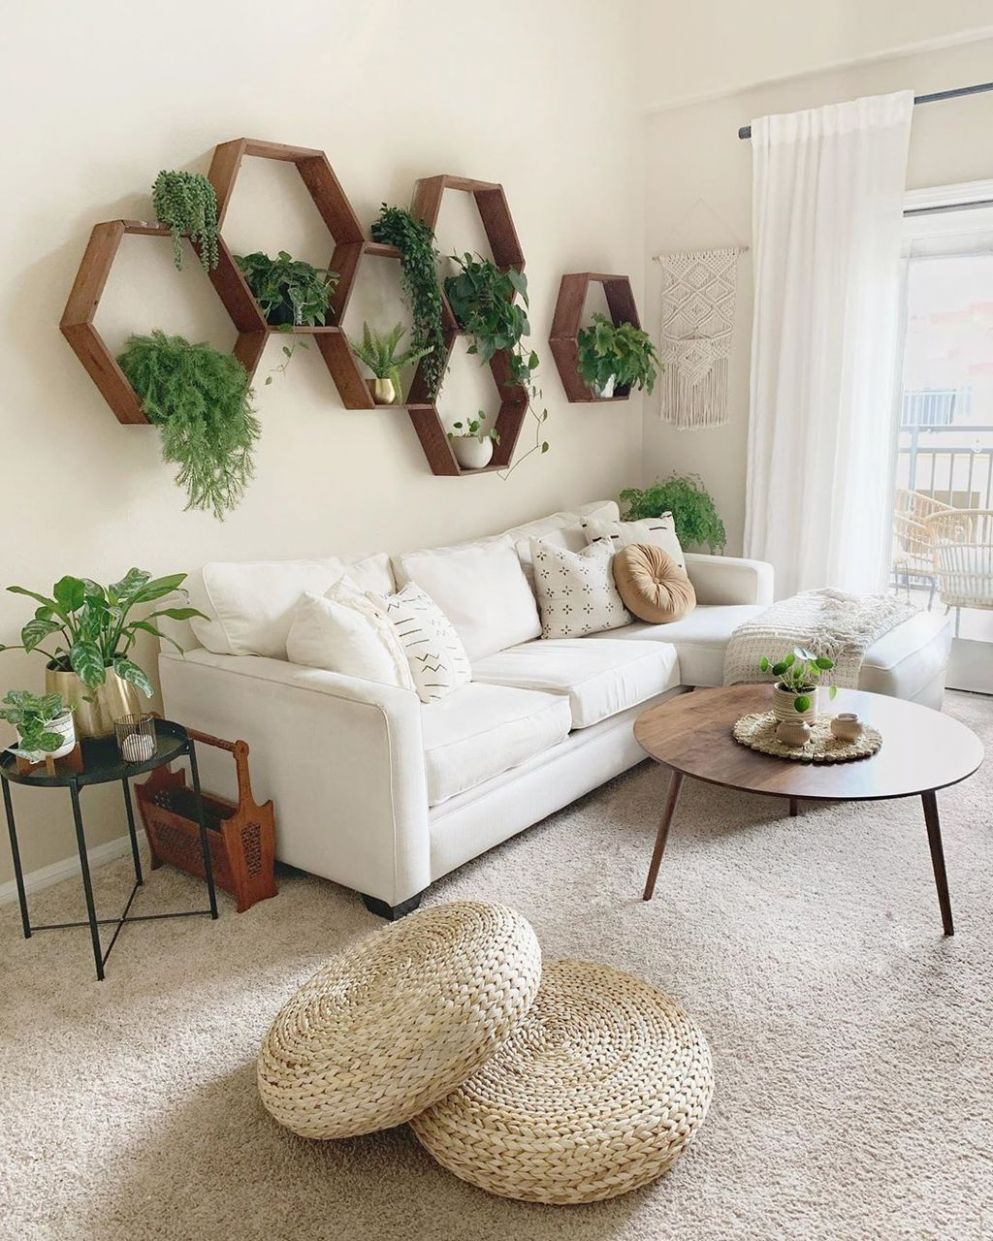 10+ Inspiring Living Room Wall Decoration Ideas You Can Try   Wall ..